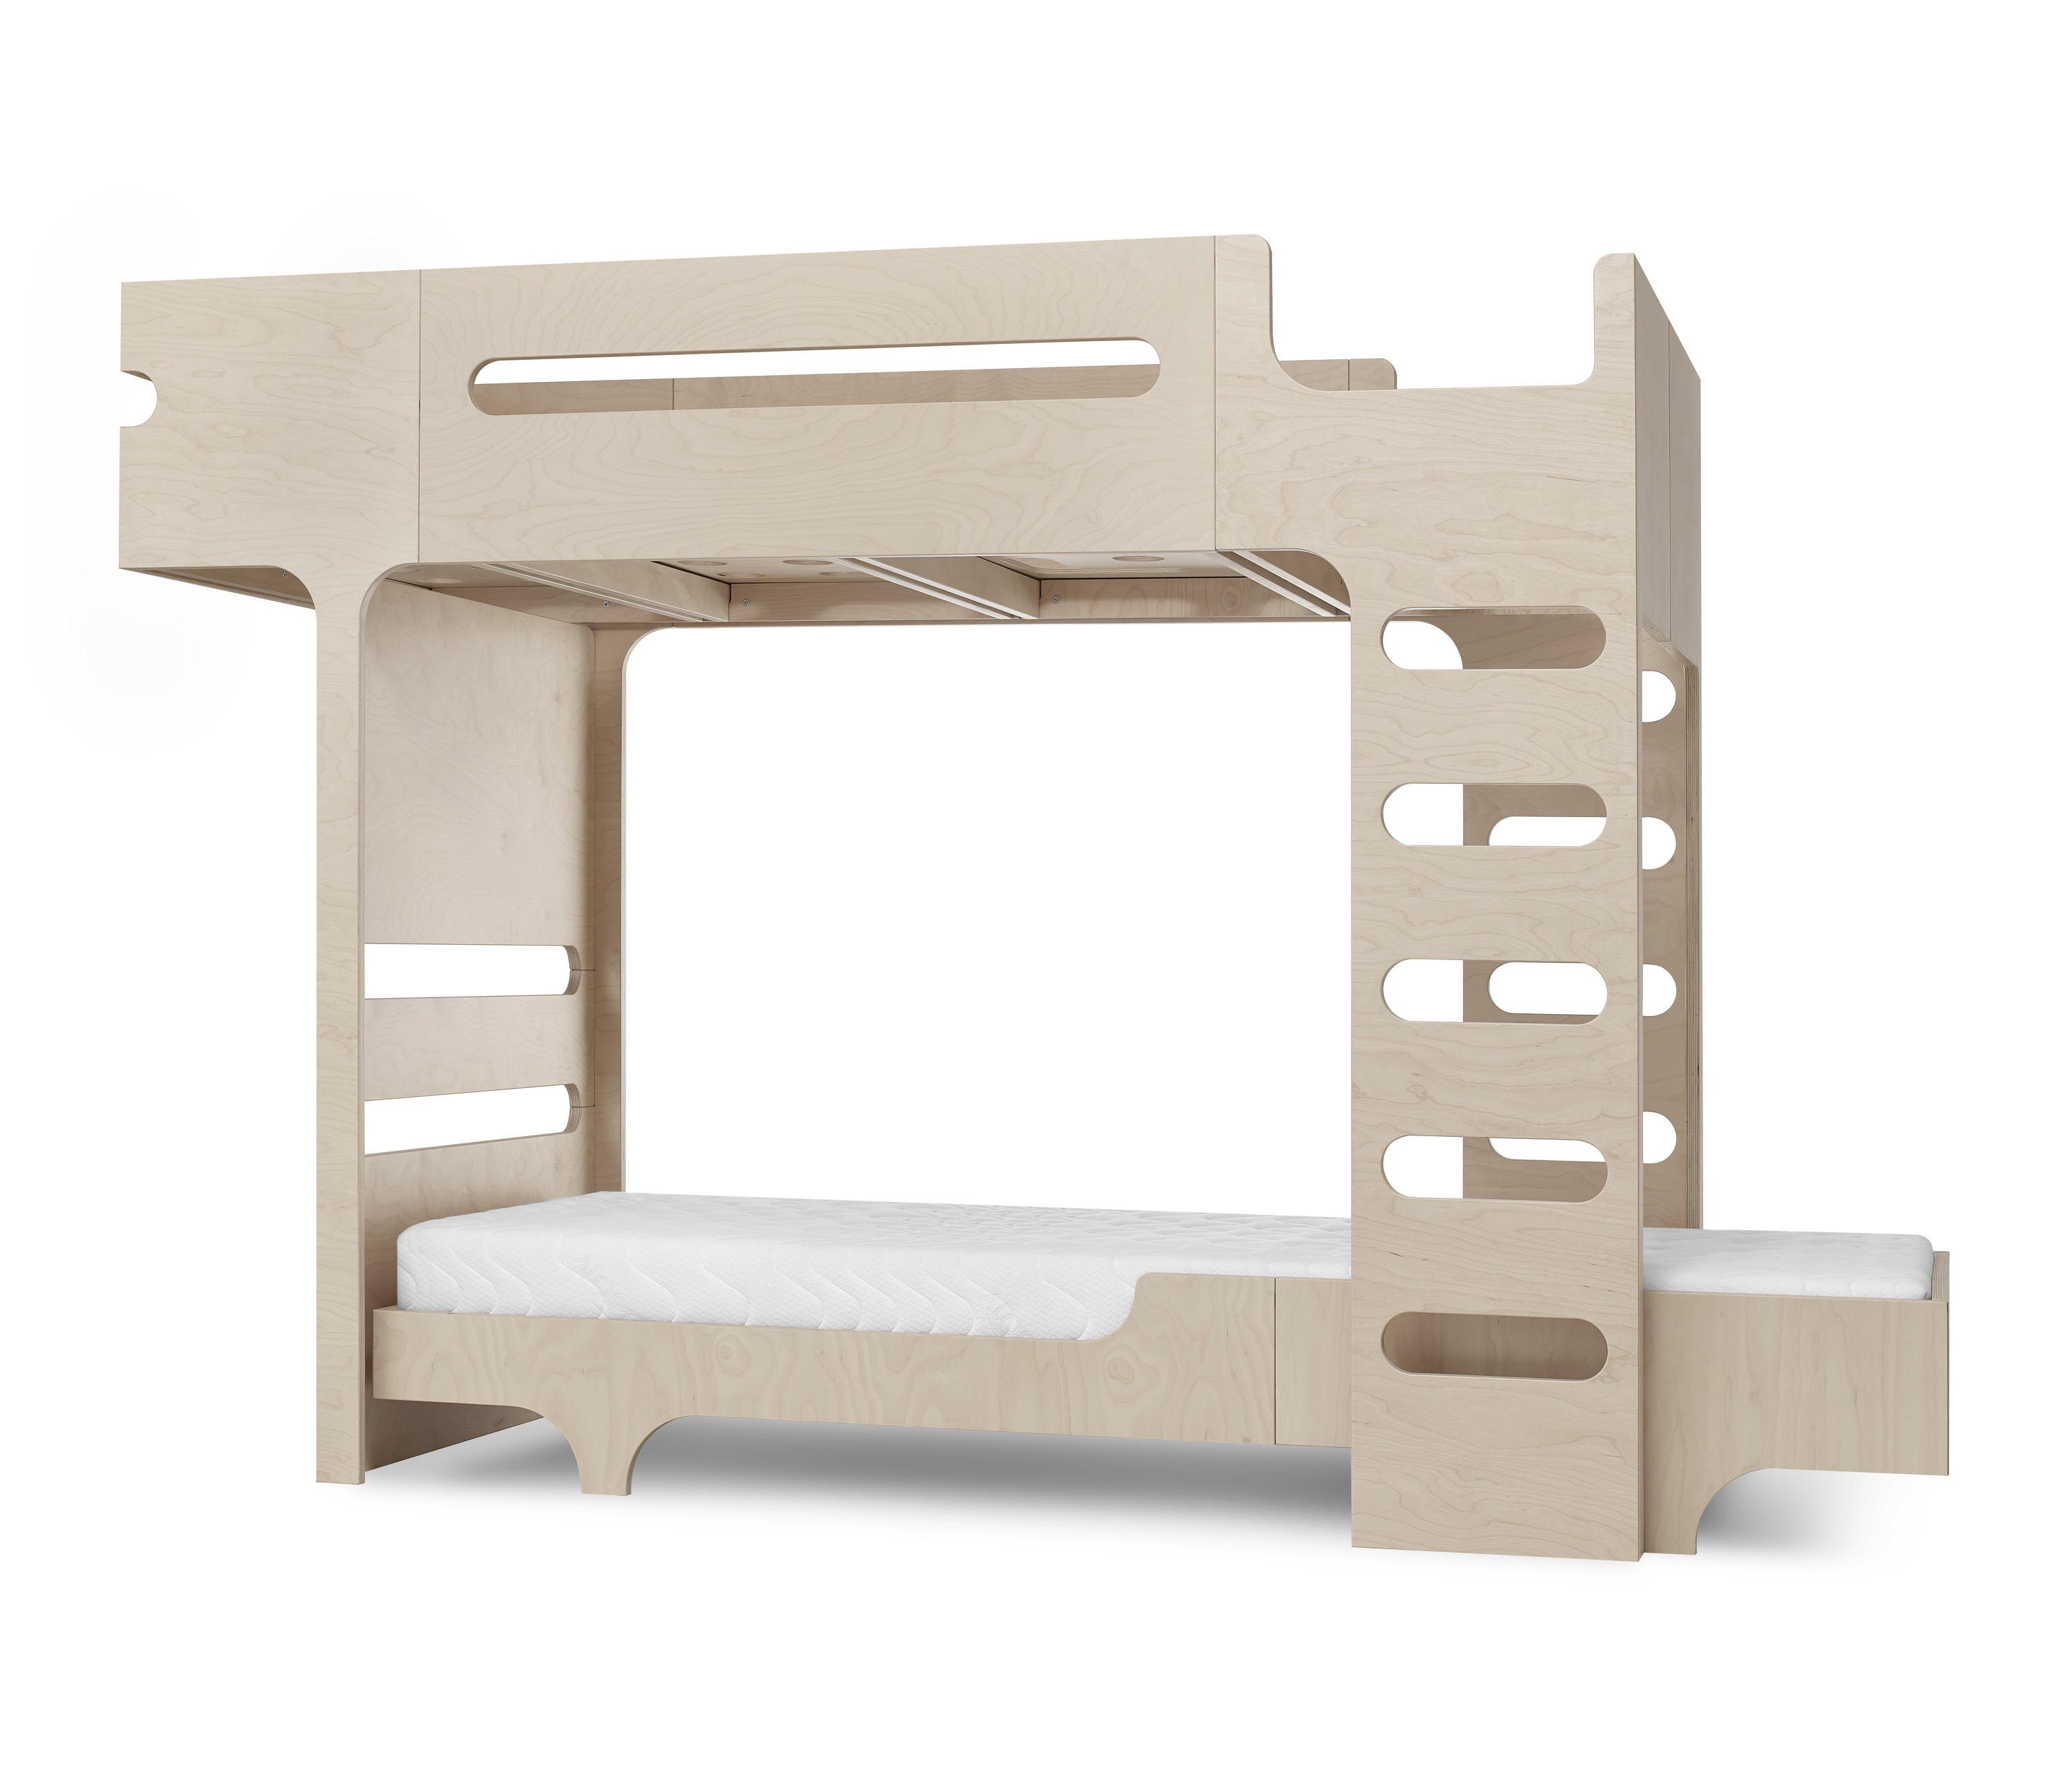 F&A bed - set for 2 kids - natural by RAFA kids | Kids beds